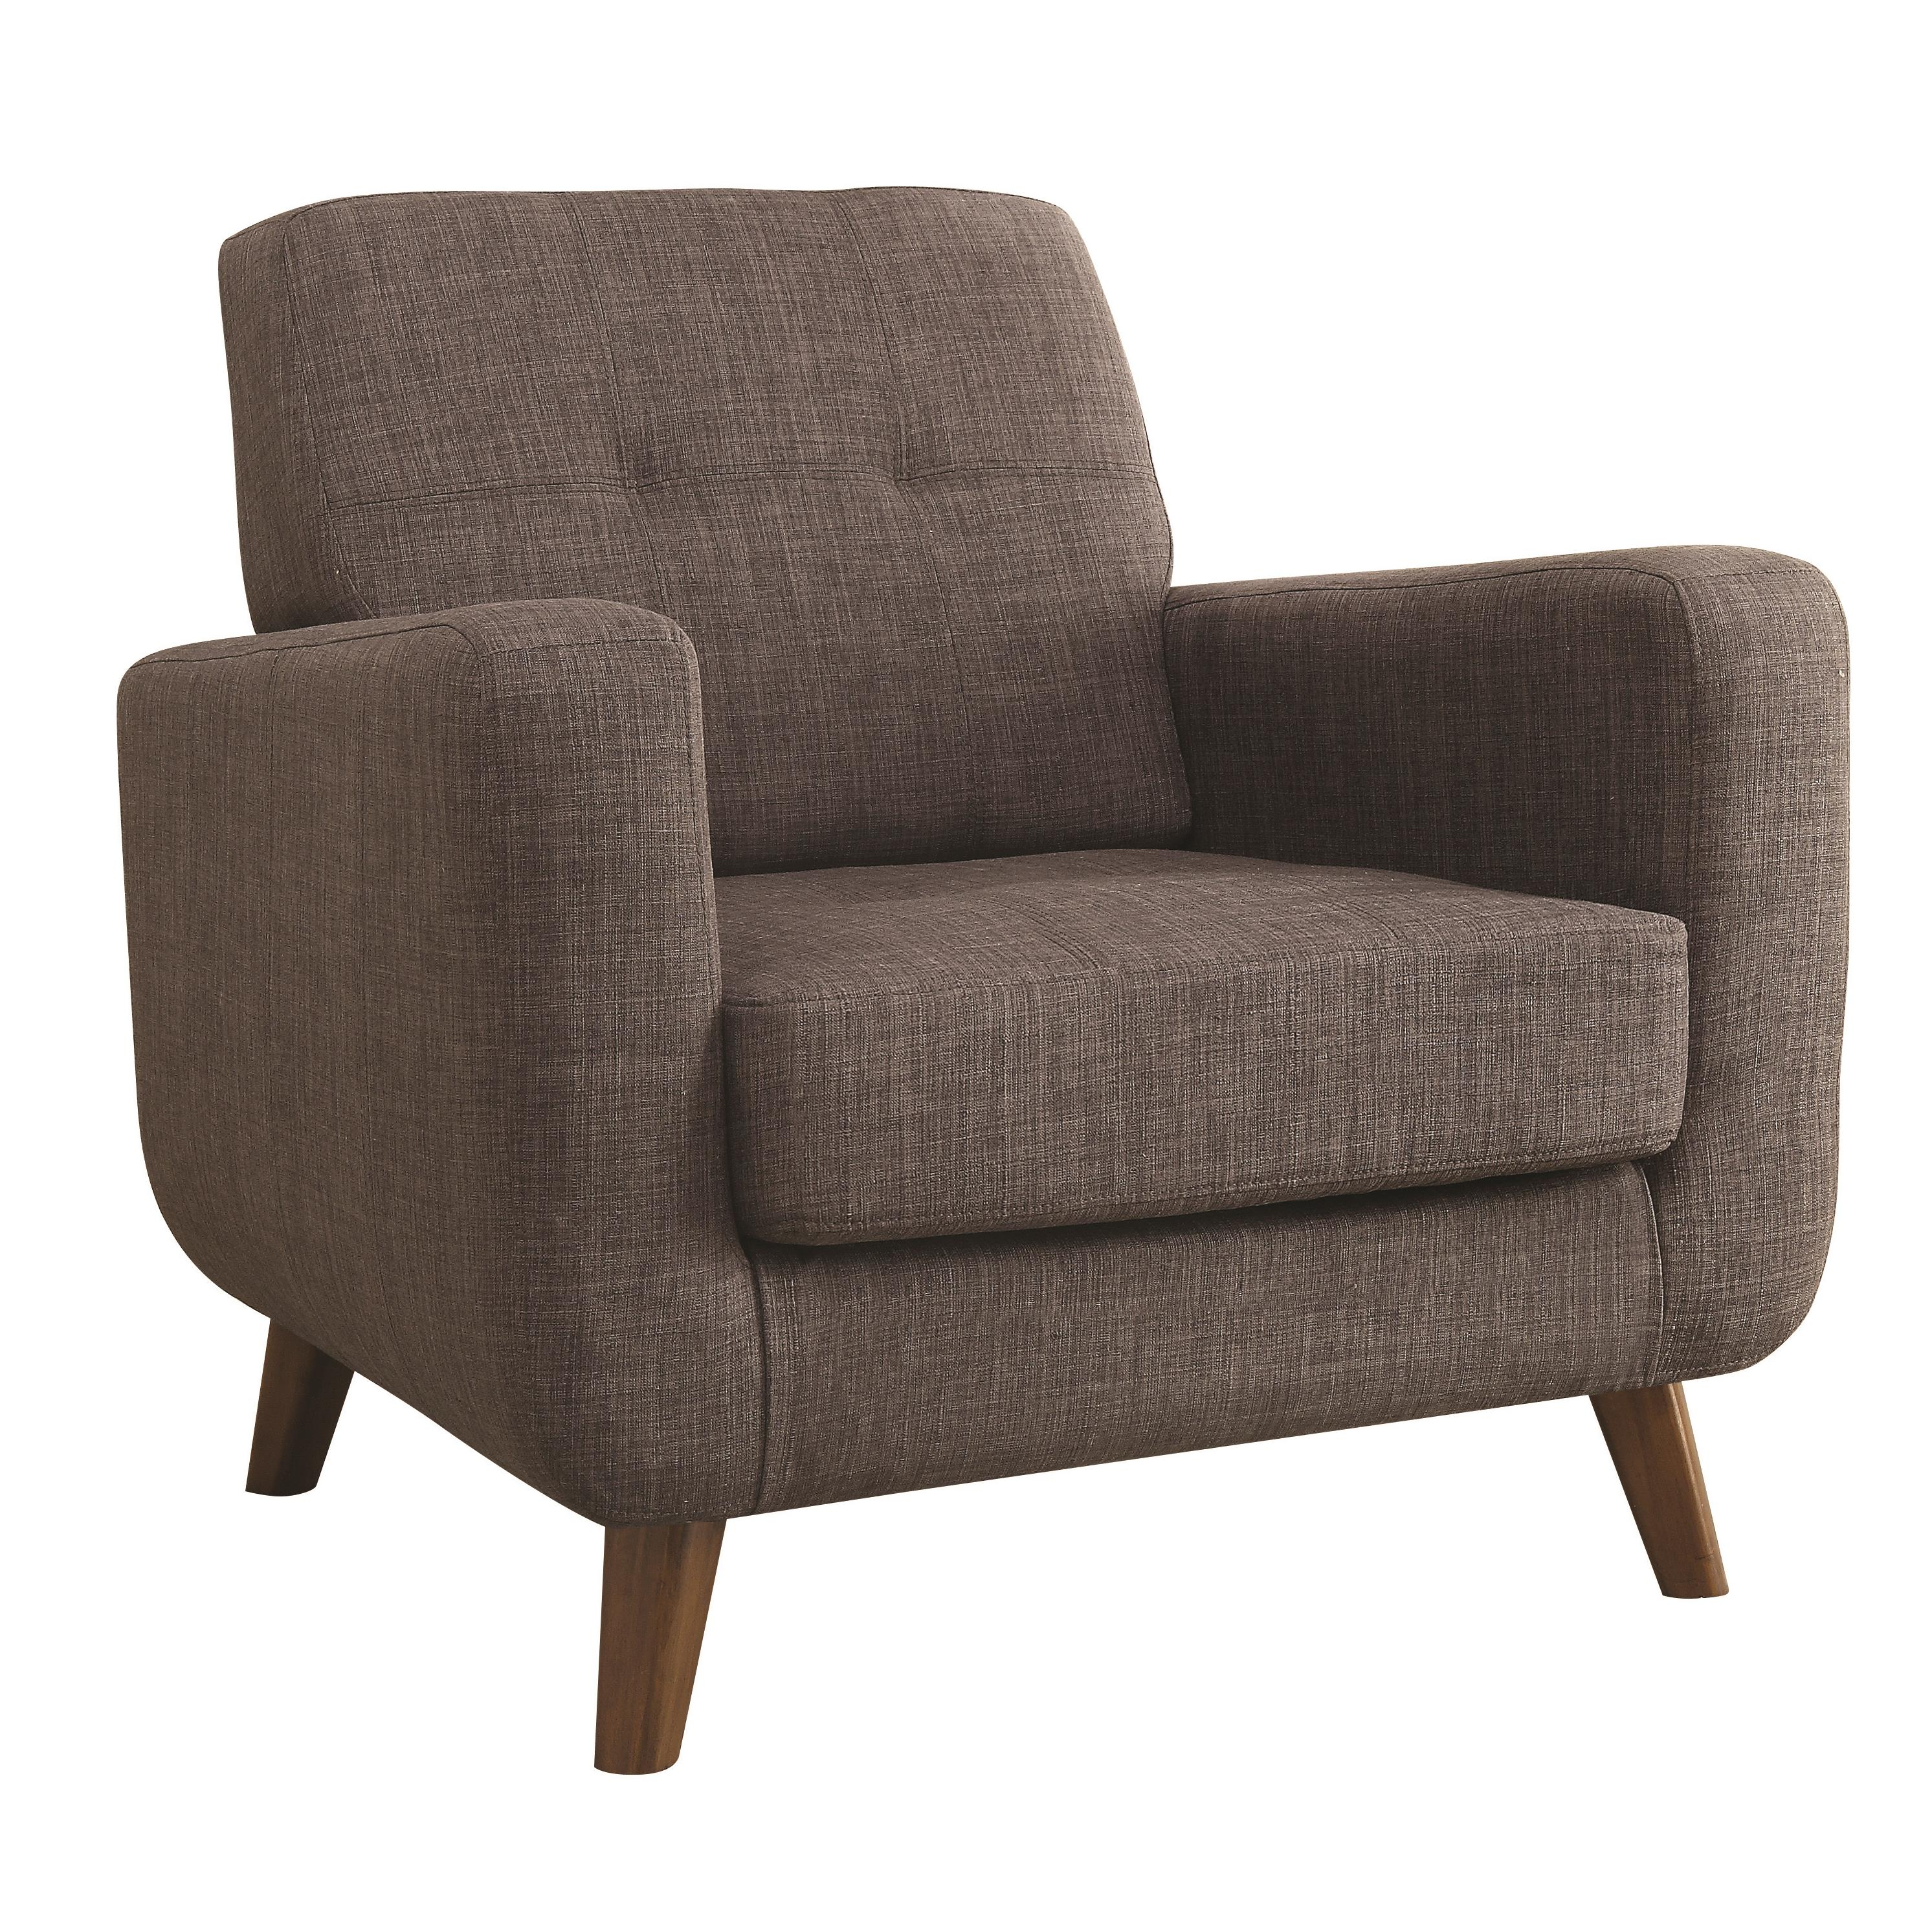 Coaster Accent Seating Accent Chair - Item Number: 902481